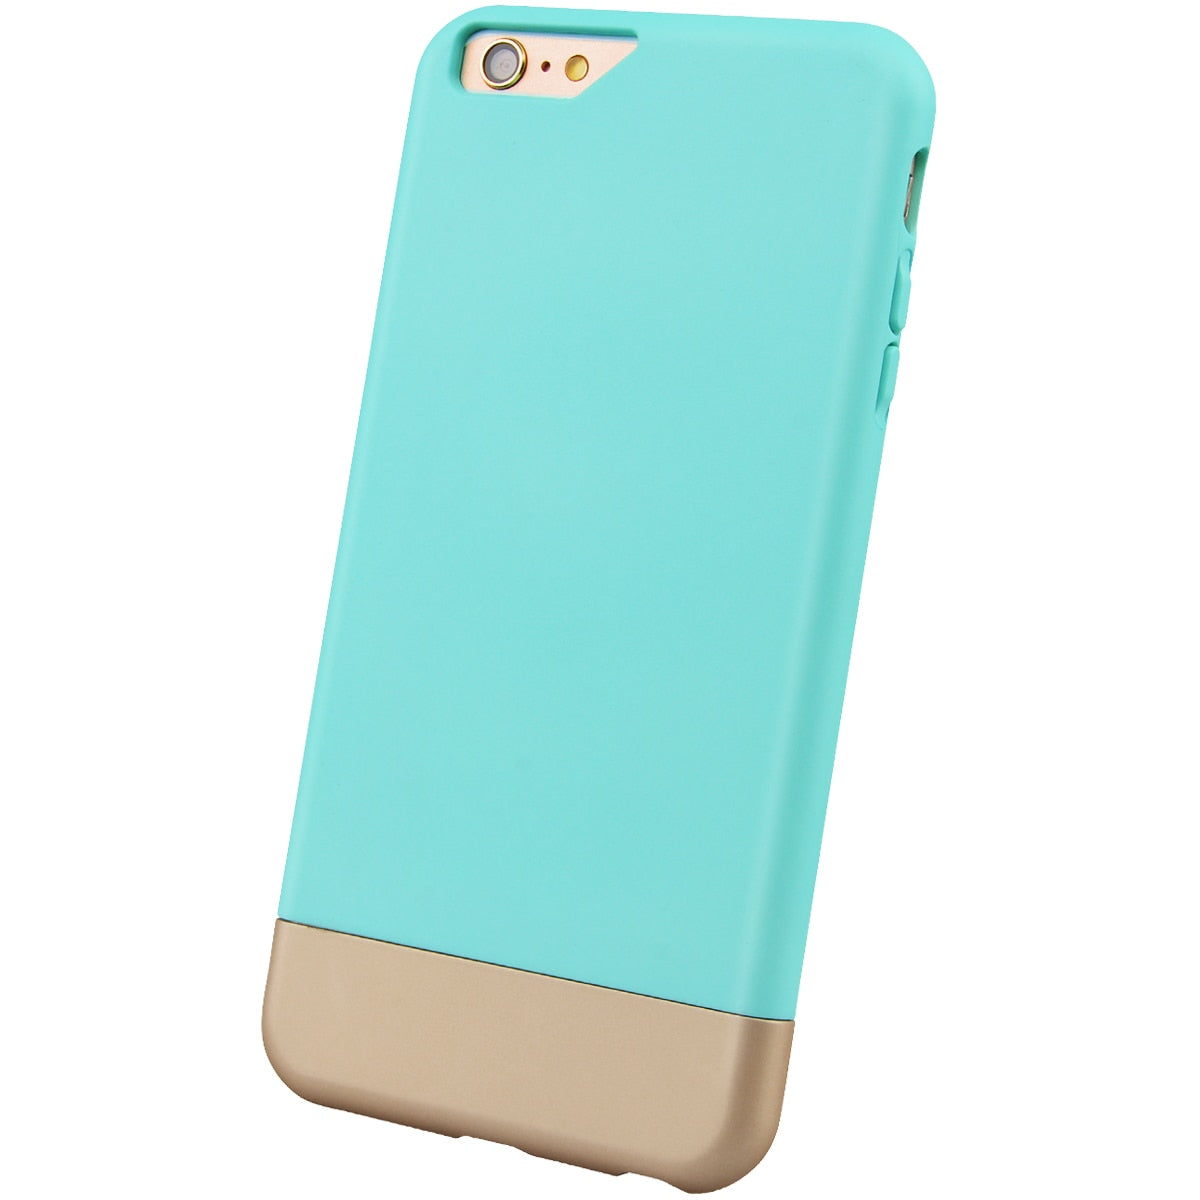 yokata coque iphone 6